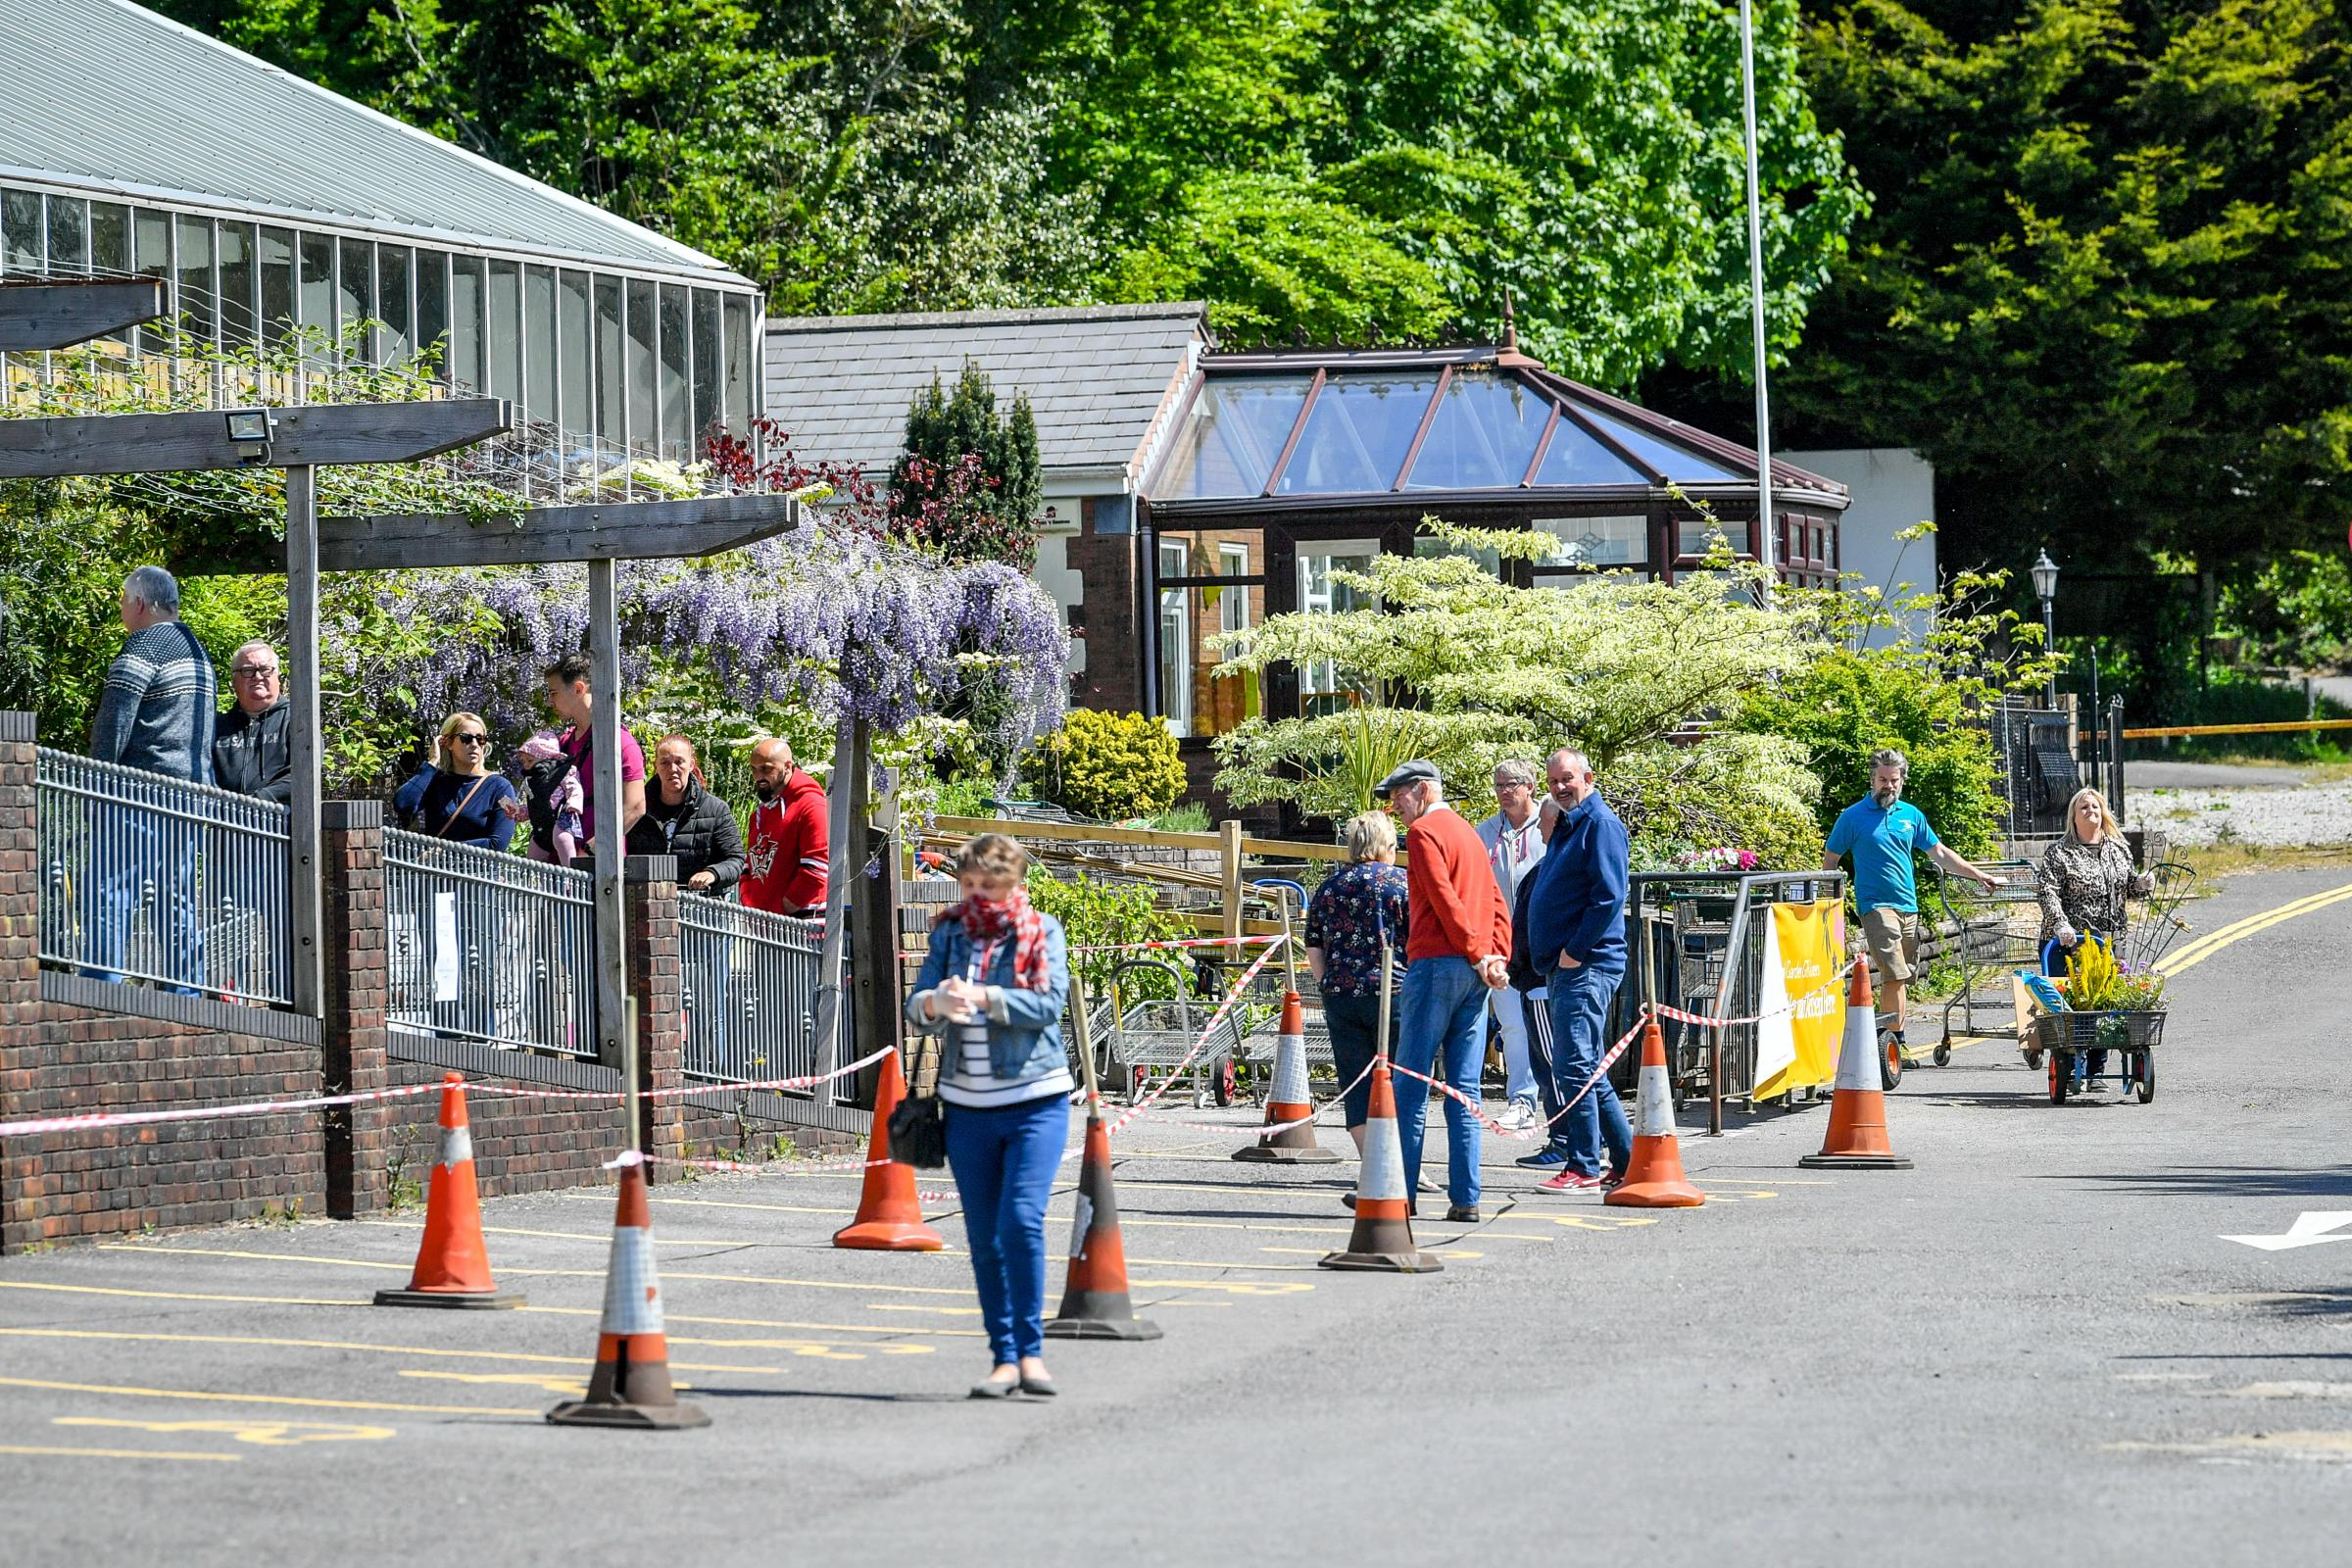 Caerphilly Garden Centre Reopens In Pictures South Wales Argus